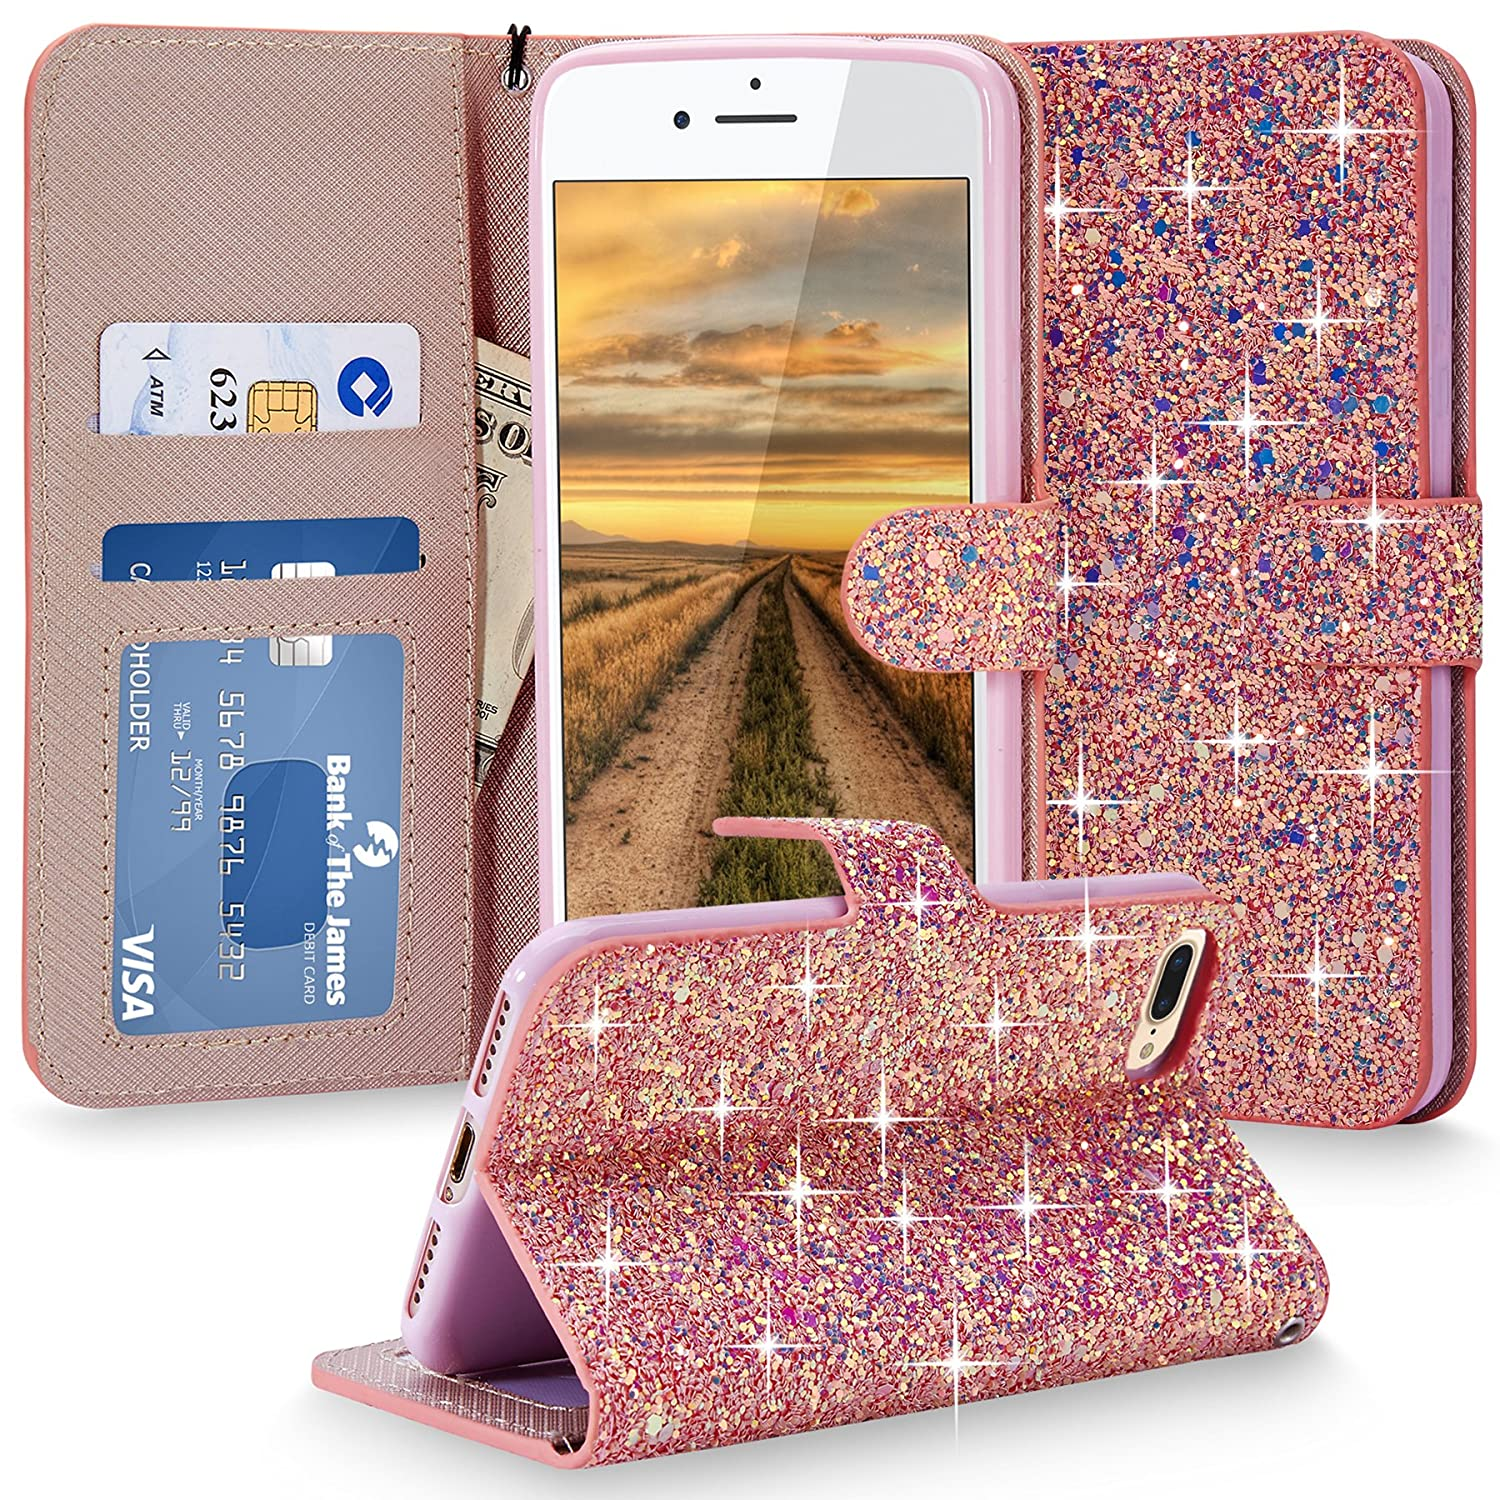 iPhone Cellularvilla Glitter Leather Protective Image 1